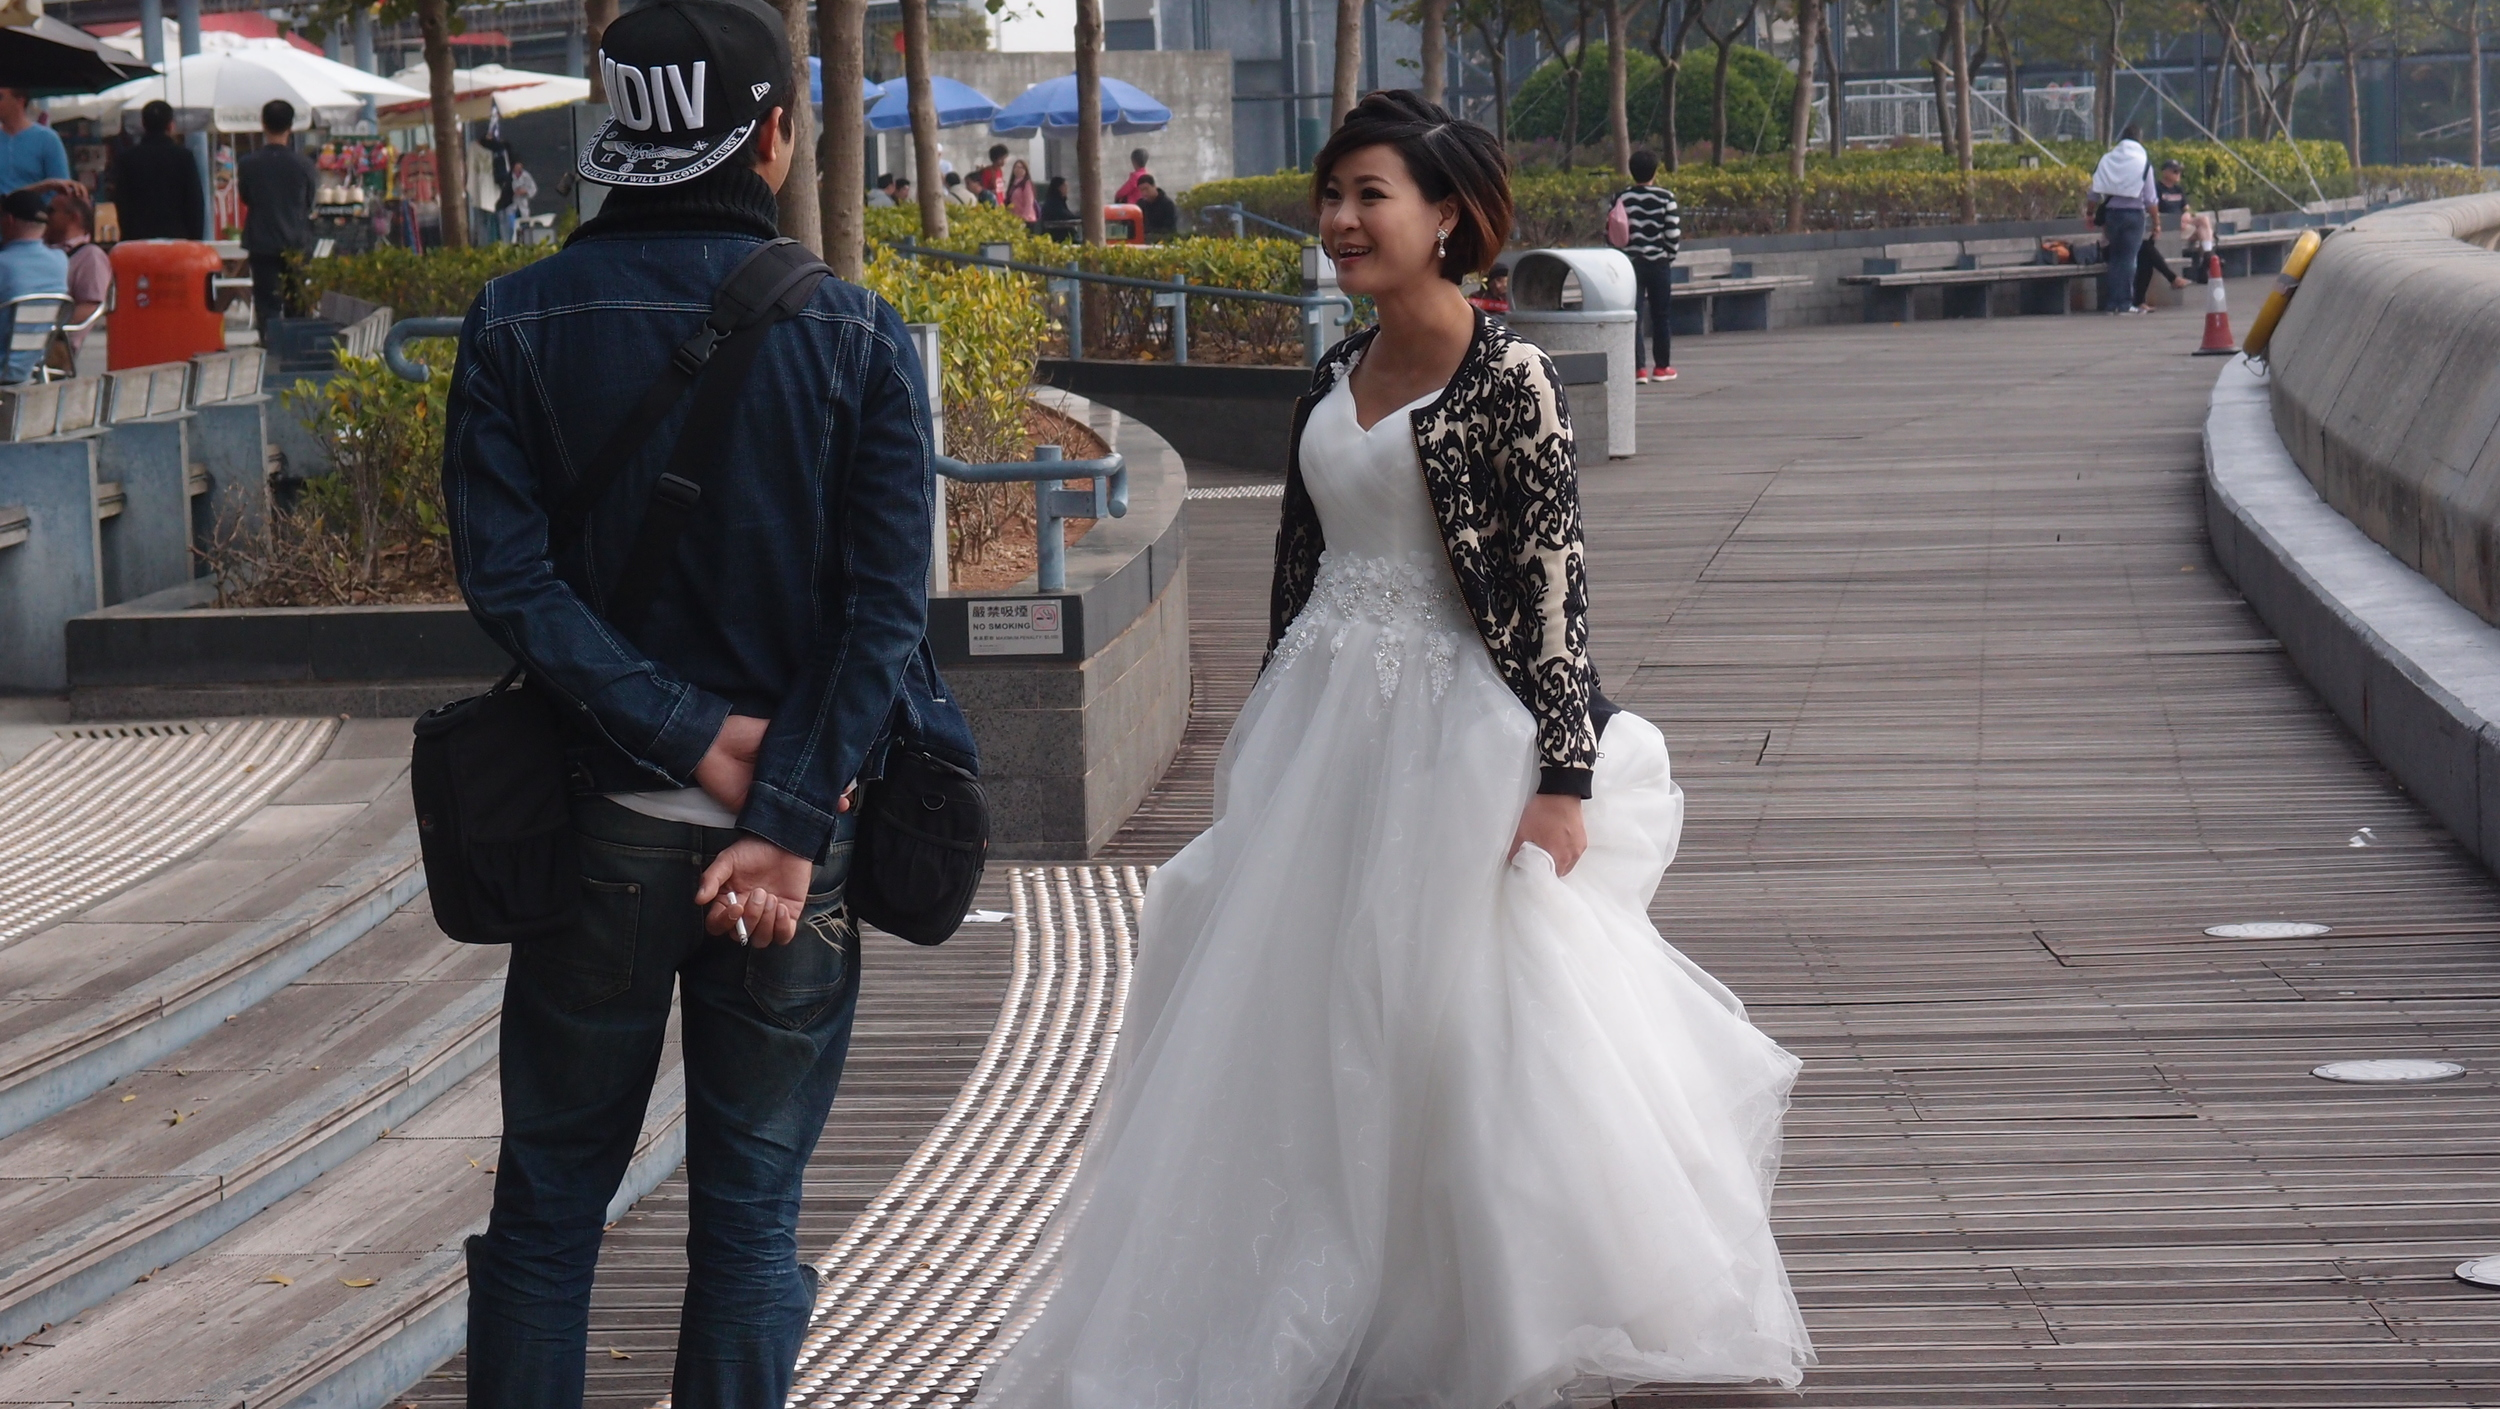 The happy bride to be discussing lighting issues on Stanley Promenade